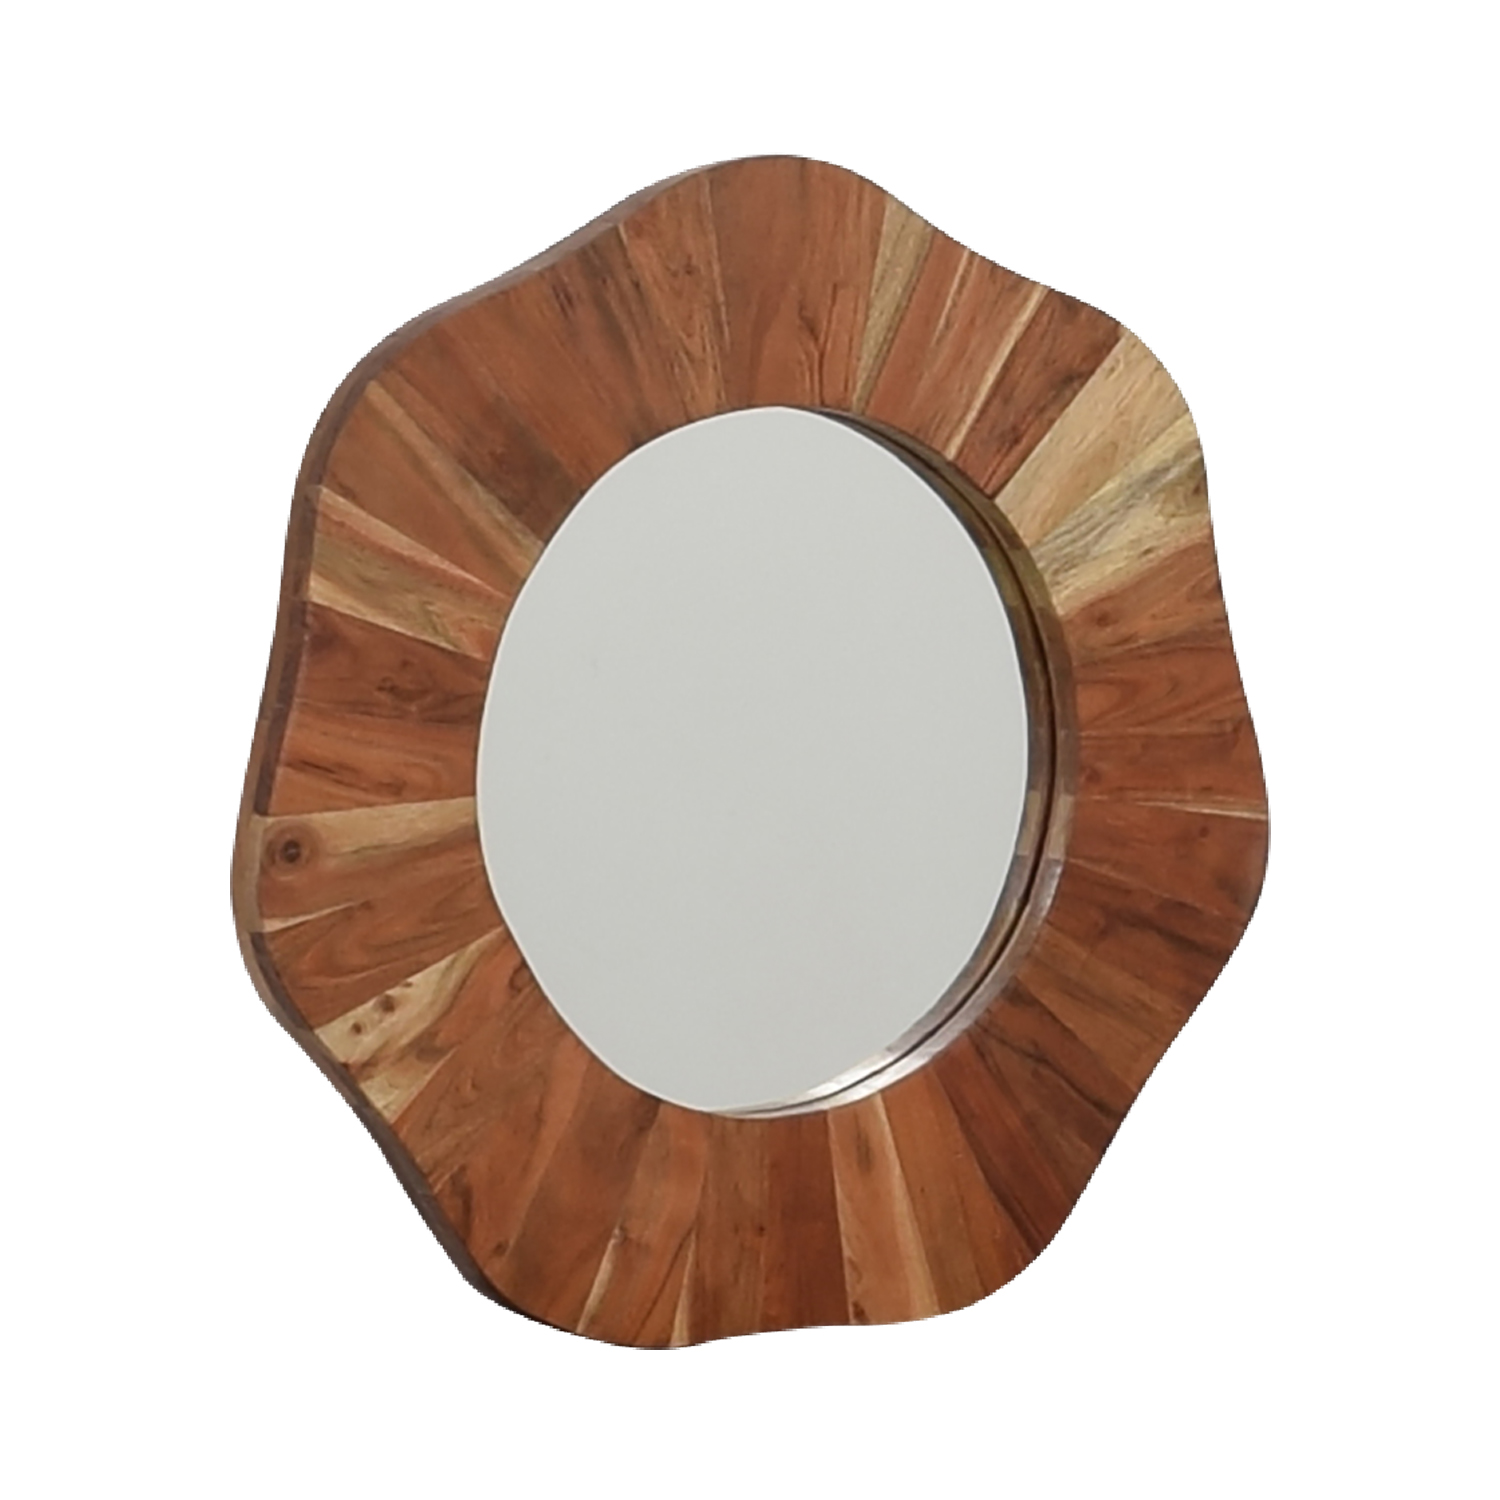 Rustic Round Wood Wall Mirror / Mirrors